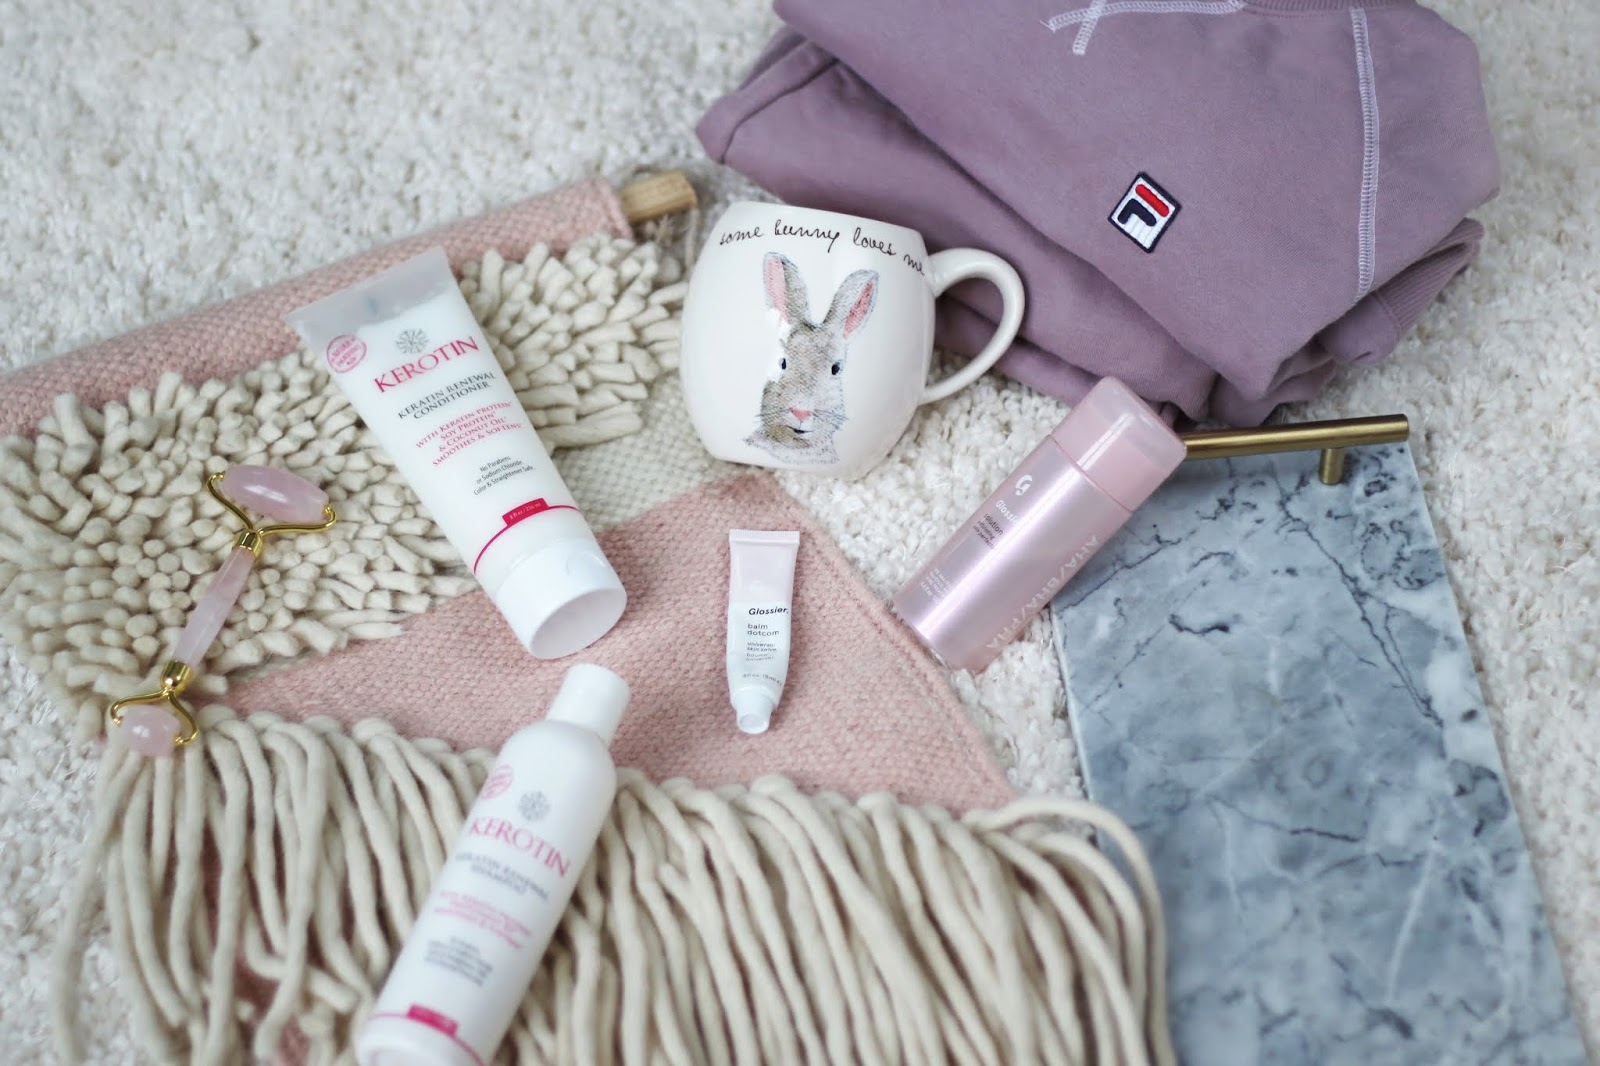 Fila, Glossier, Rae Dunn Mug, Better Homes and Gardens Marble Tray, Inexpensive Sweatsuit, Favorite Things, Glossier Solution, Jade Roller, Rose Quartz Roller, Serenity 7X, college blogger, lifestyle blogger, wisconsin blogger